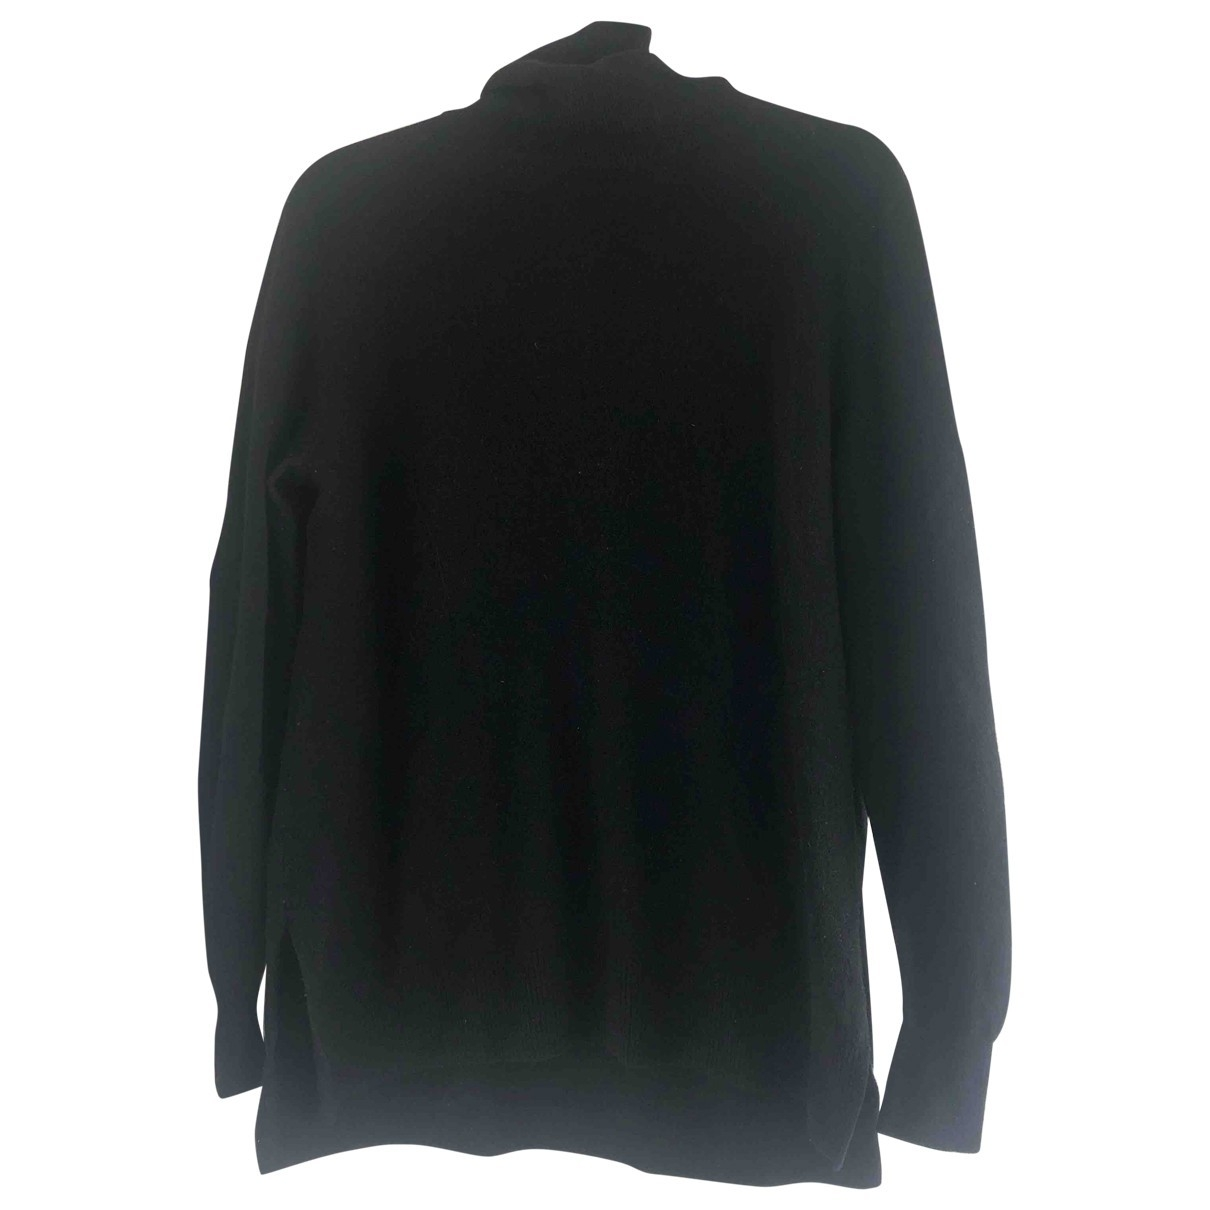 Massimo Dutti \N Pullover in  Schwarz Wolle